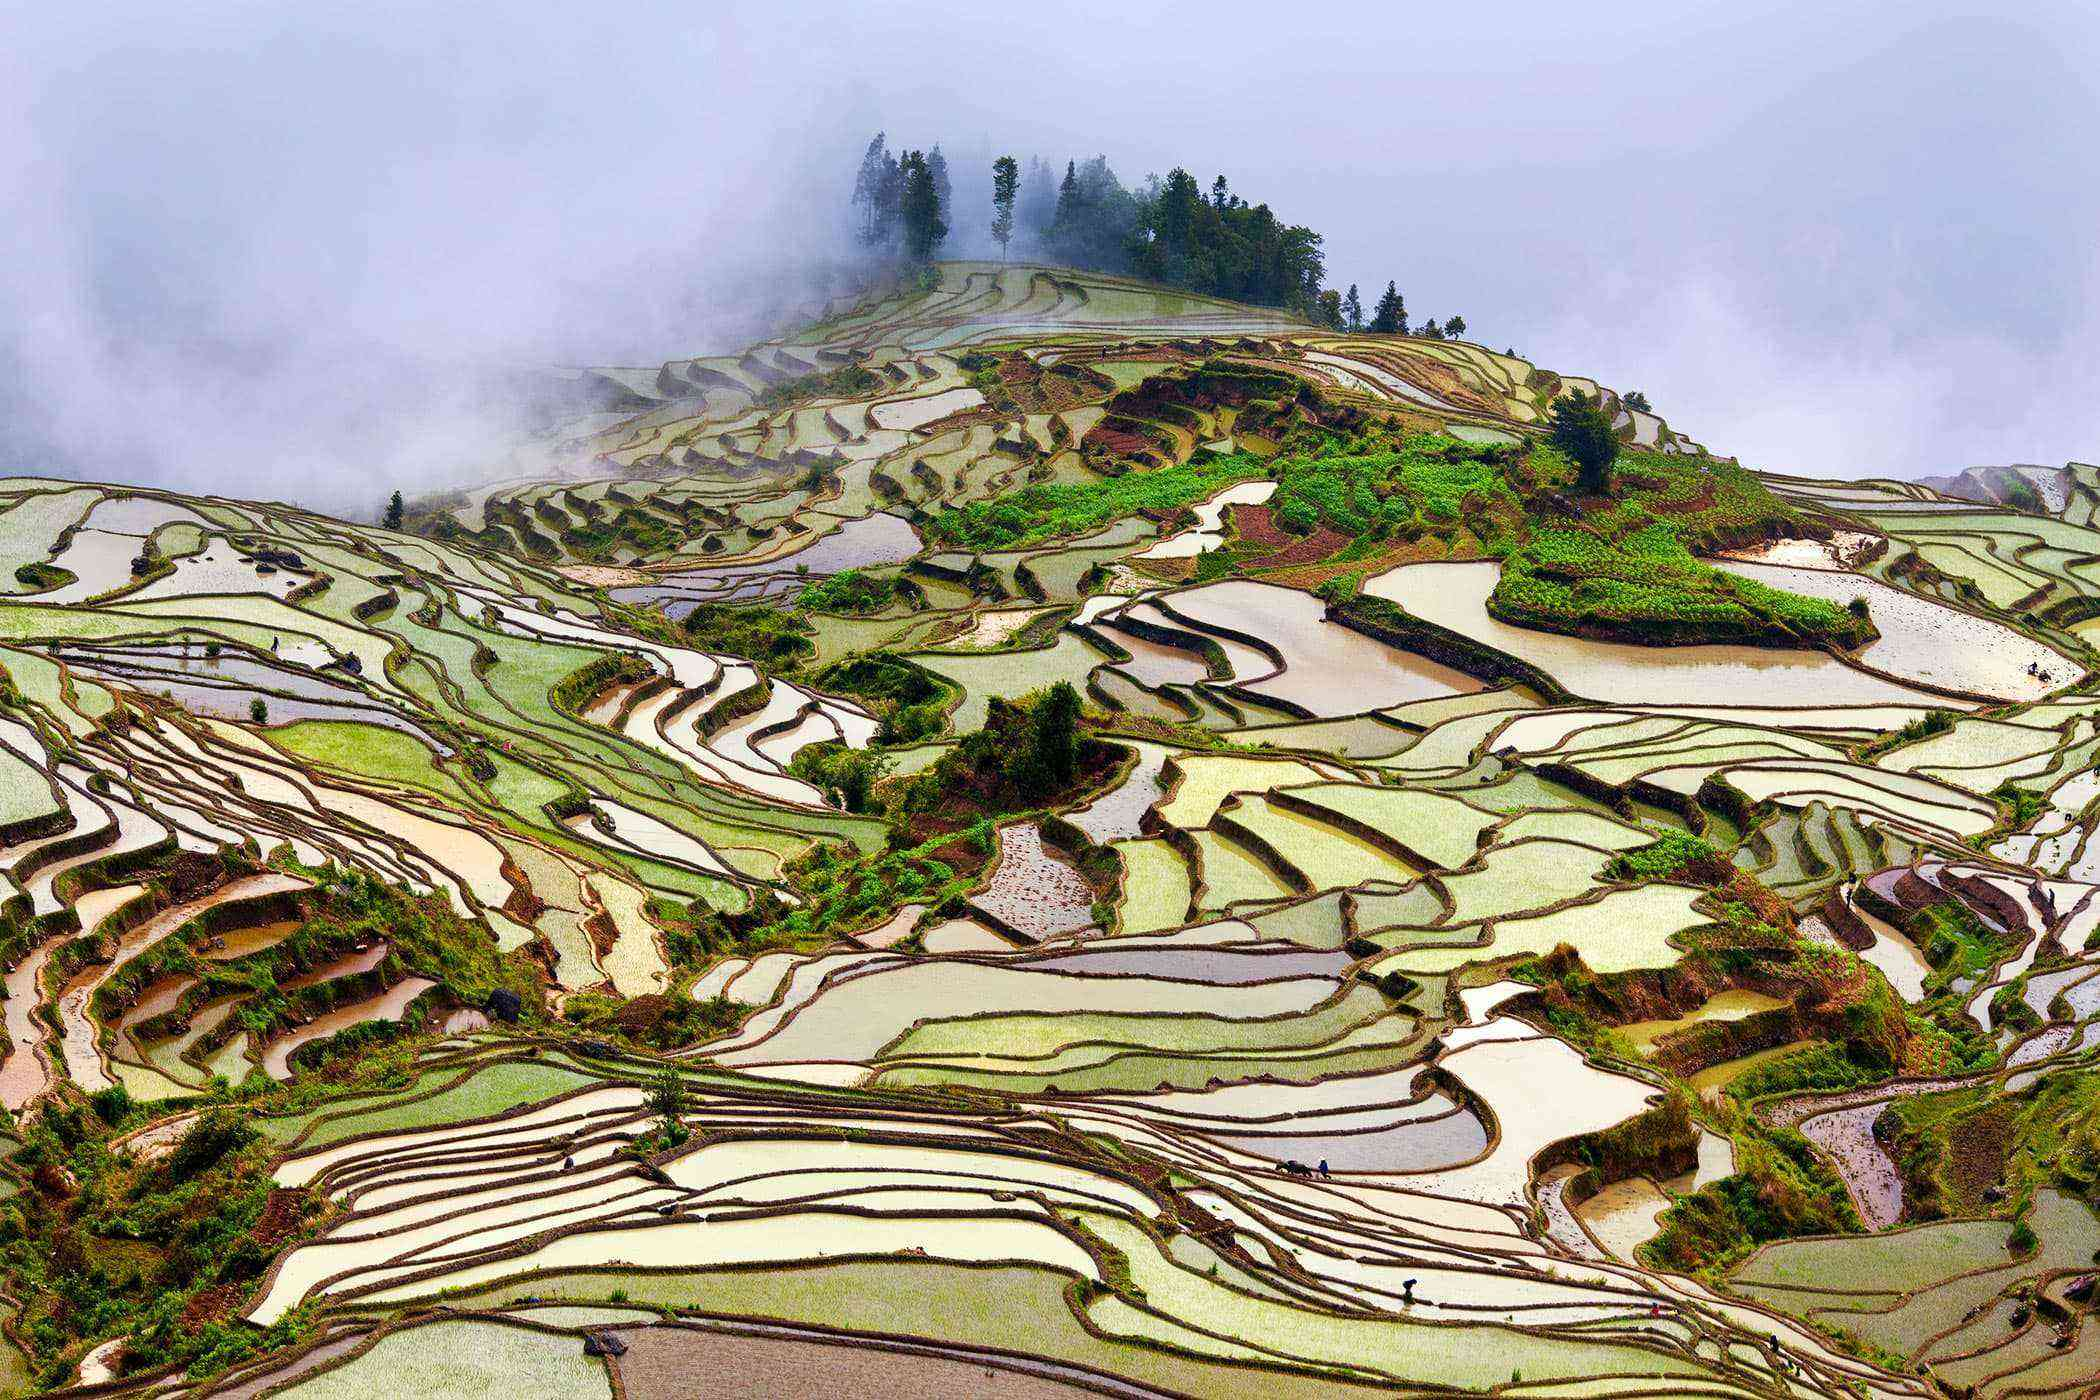 Out Of This World The 25 Most Surreal Landscapes On The Planet Fodors Travel Guide